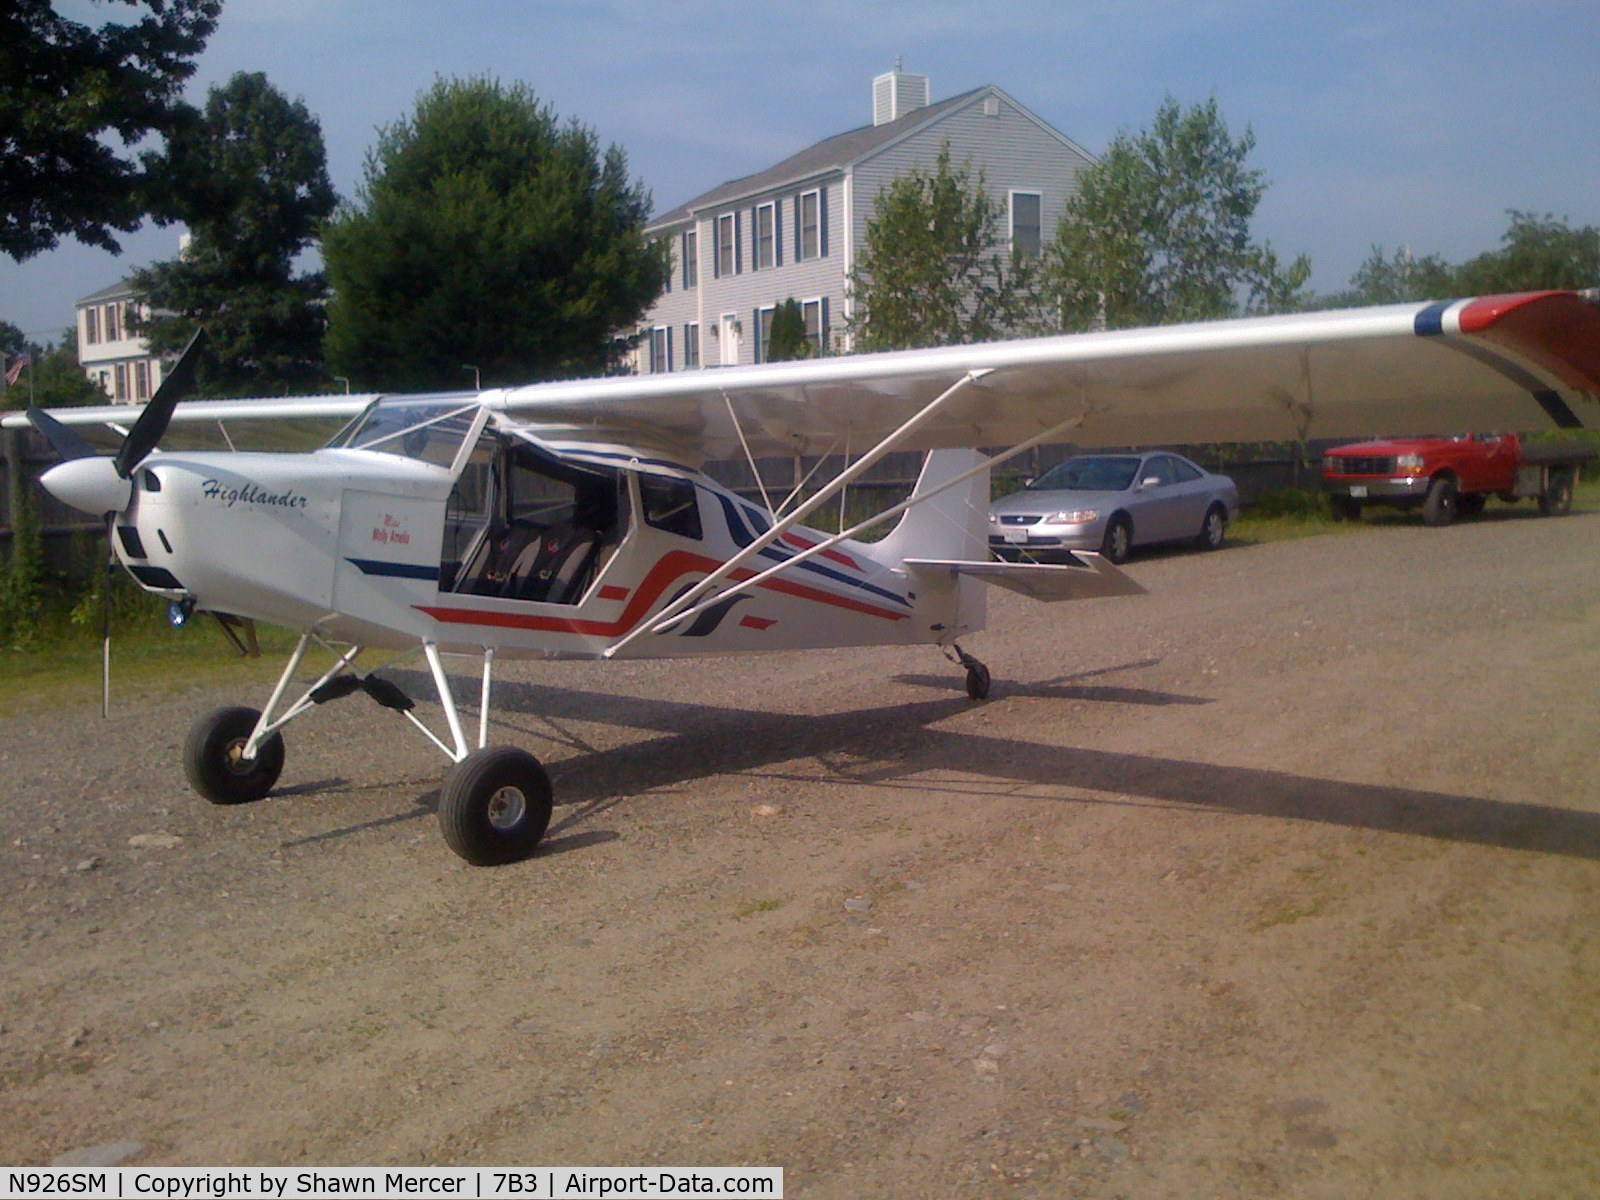 N926SM, 2006 Just Aircraft Highlander C/N JAESC0093, Just Aircraft Highlander